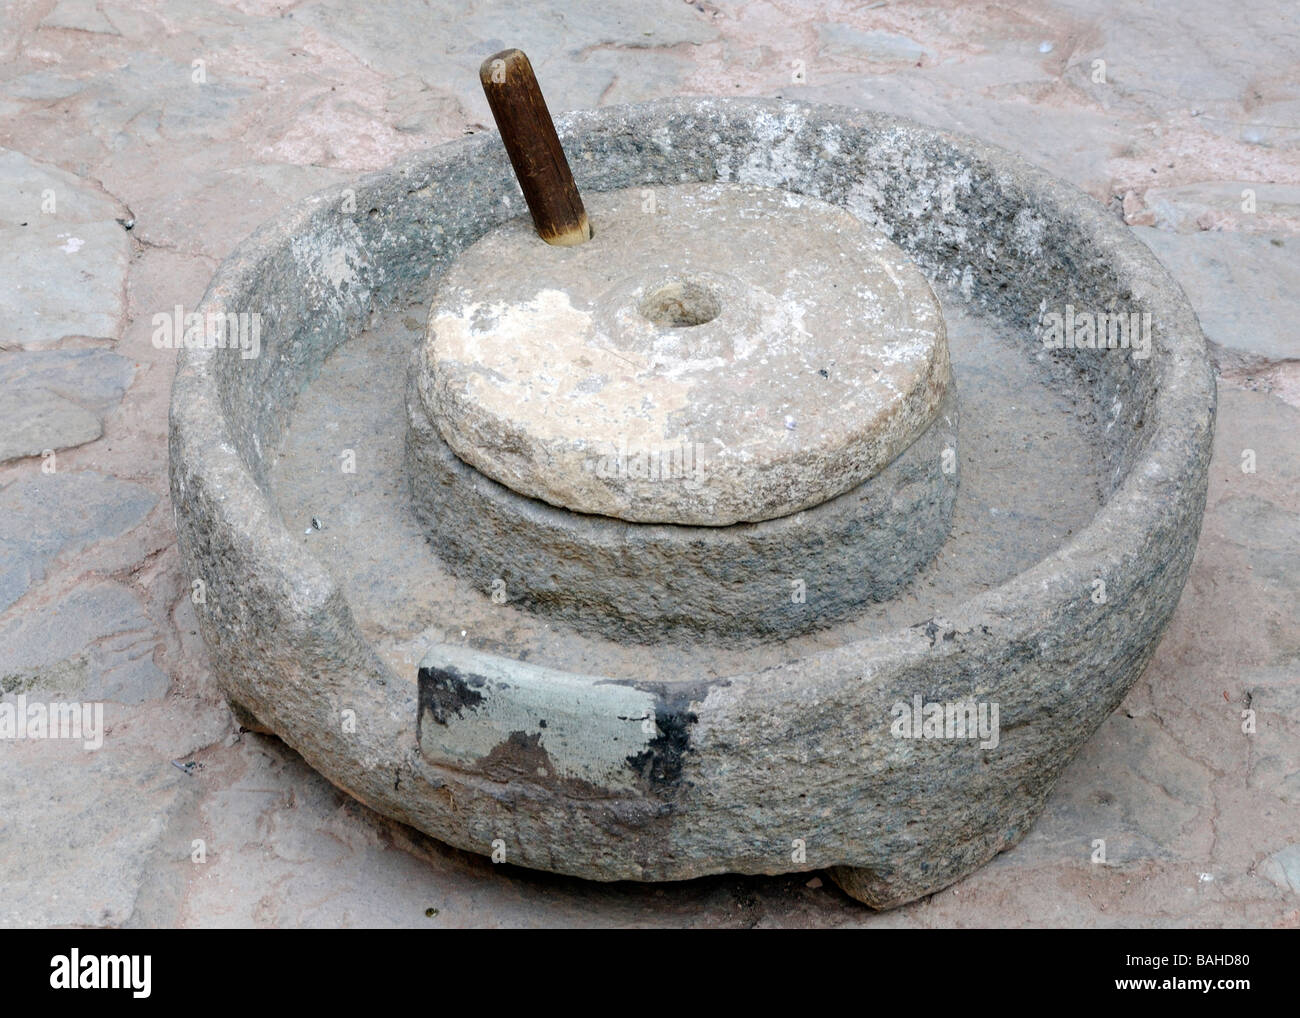 An Ancient Sandstone Quern Stone The Lower Stone And